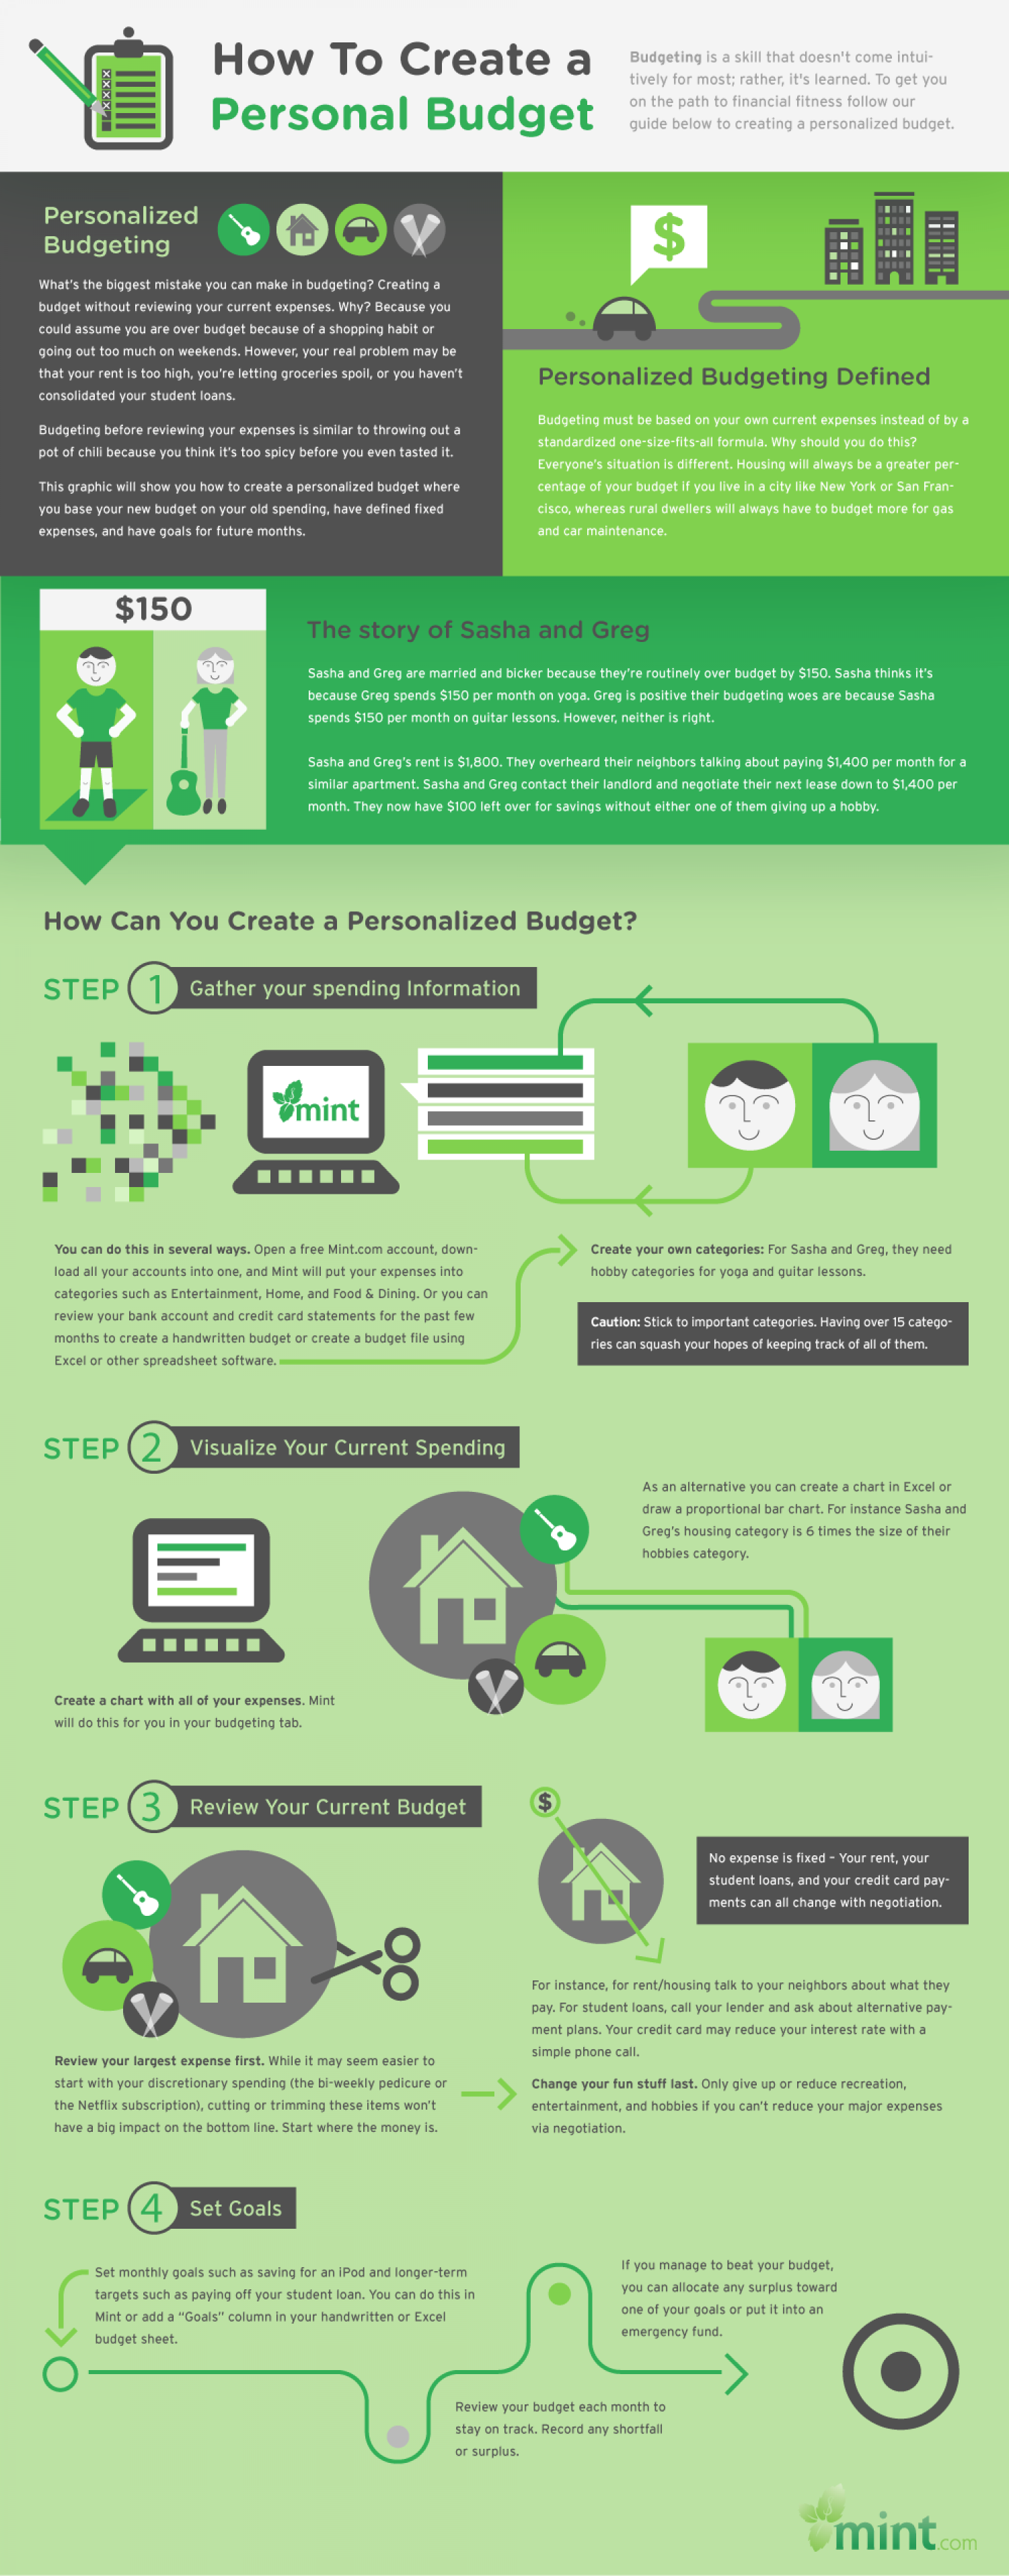 How to Create a Personal Budget Infographic